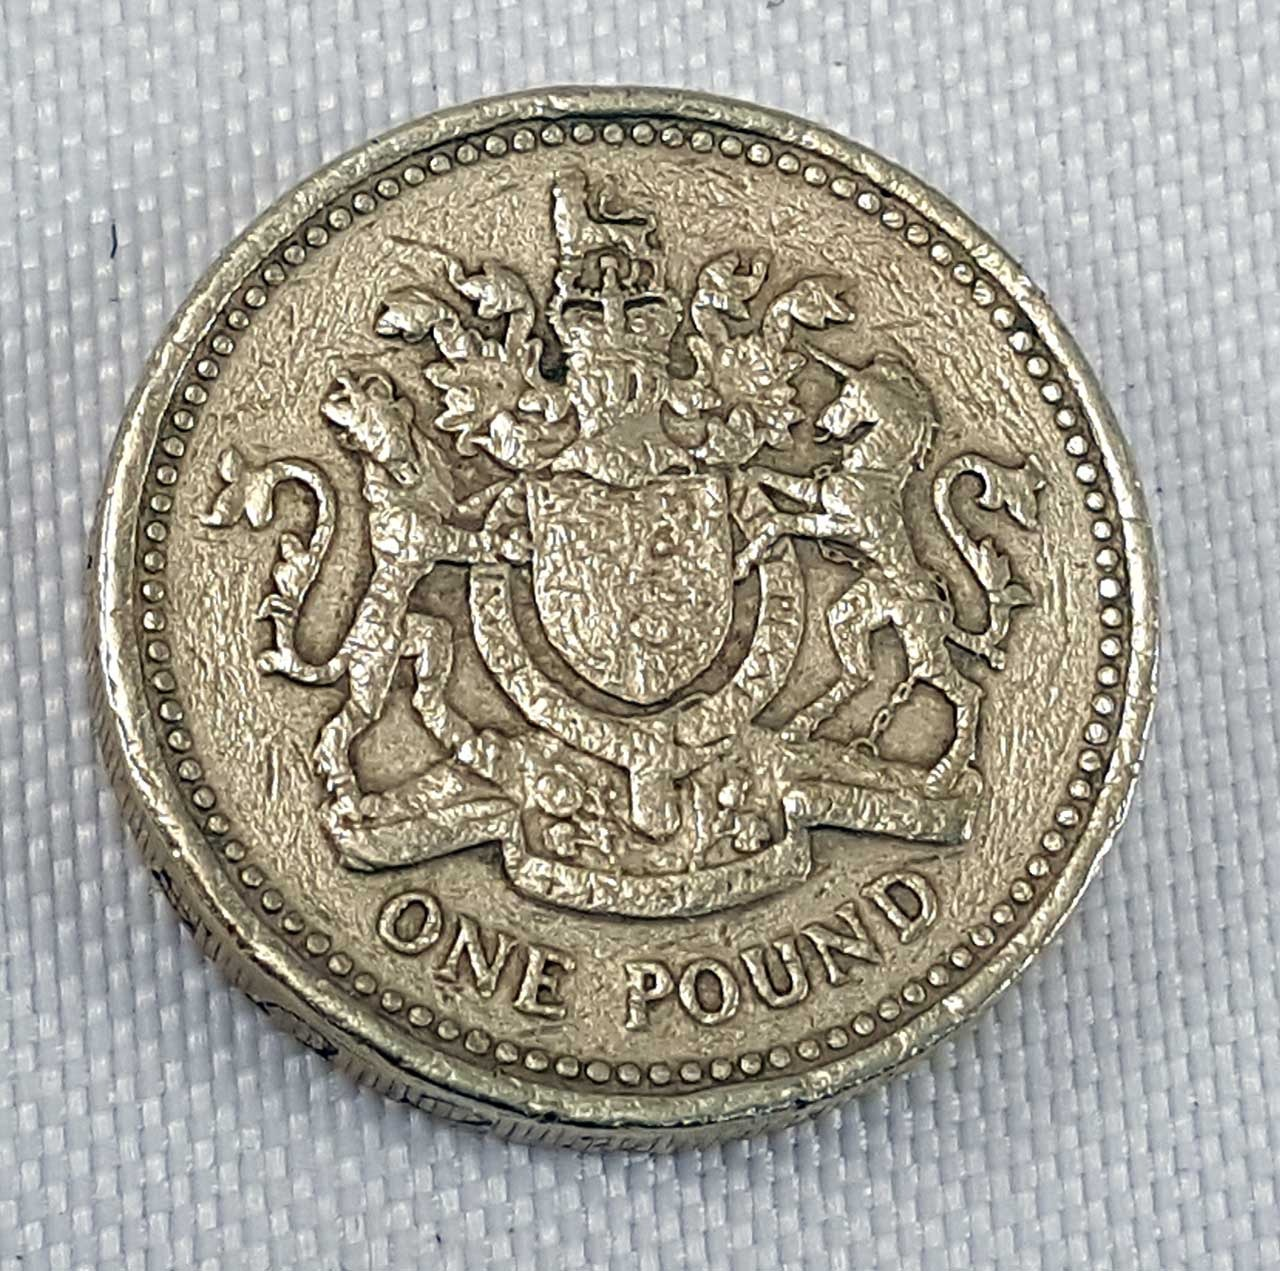 1983 one pound elizabeth coin value